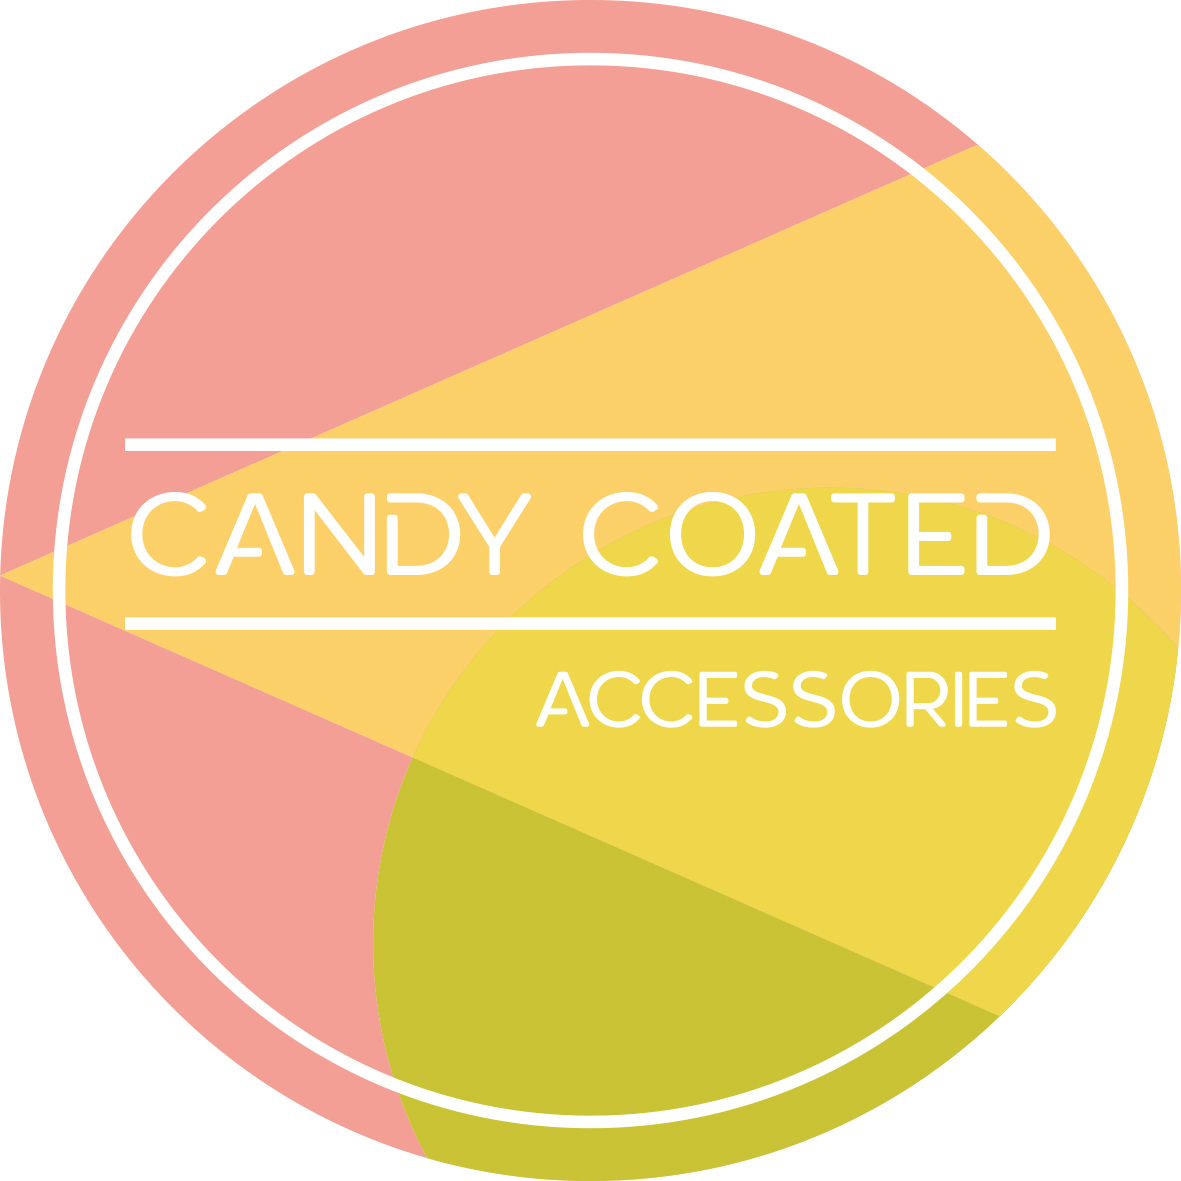 Candy Coated Accessories